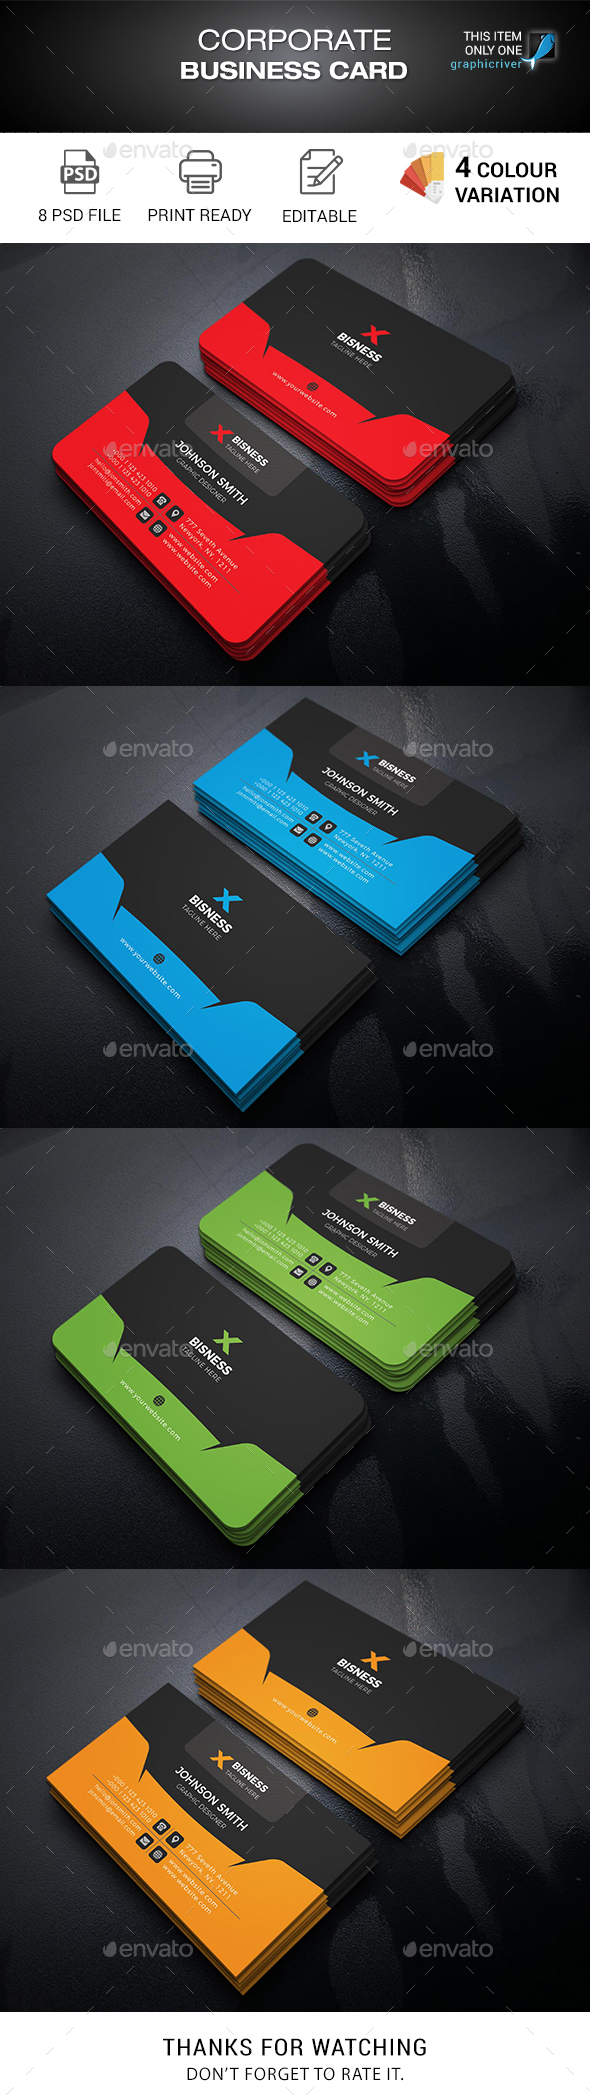 Business Card Templates Designs From